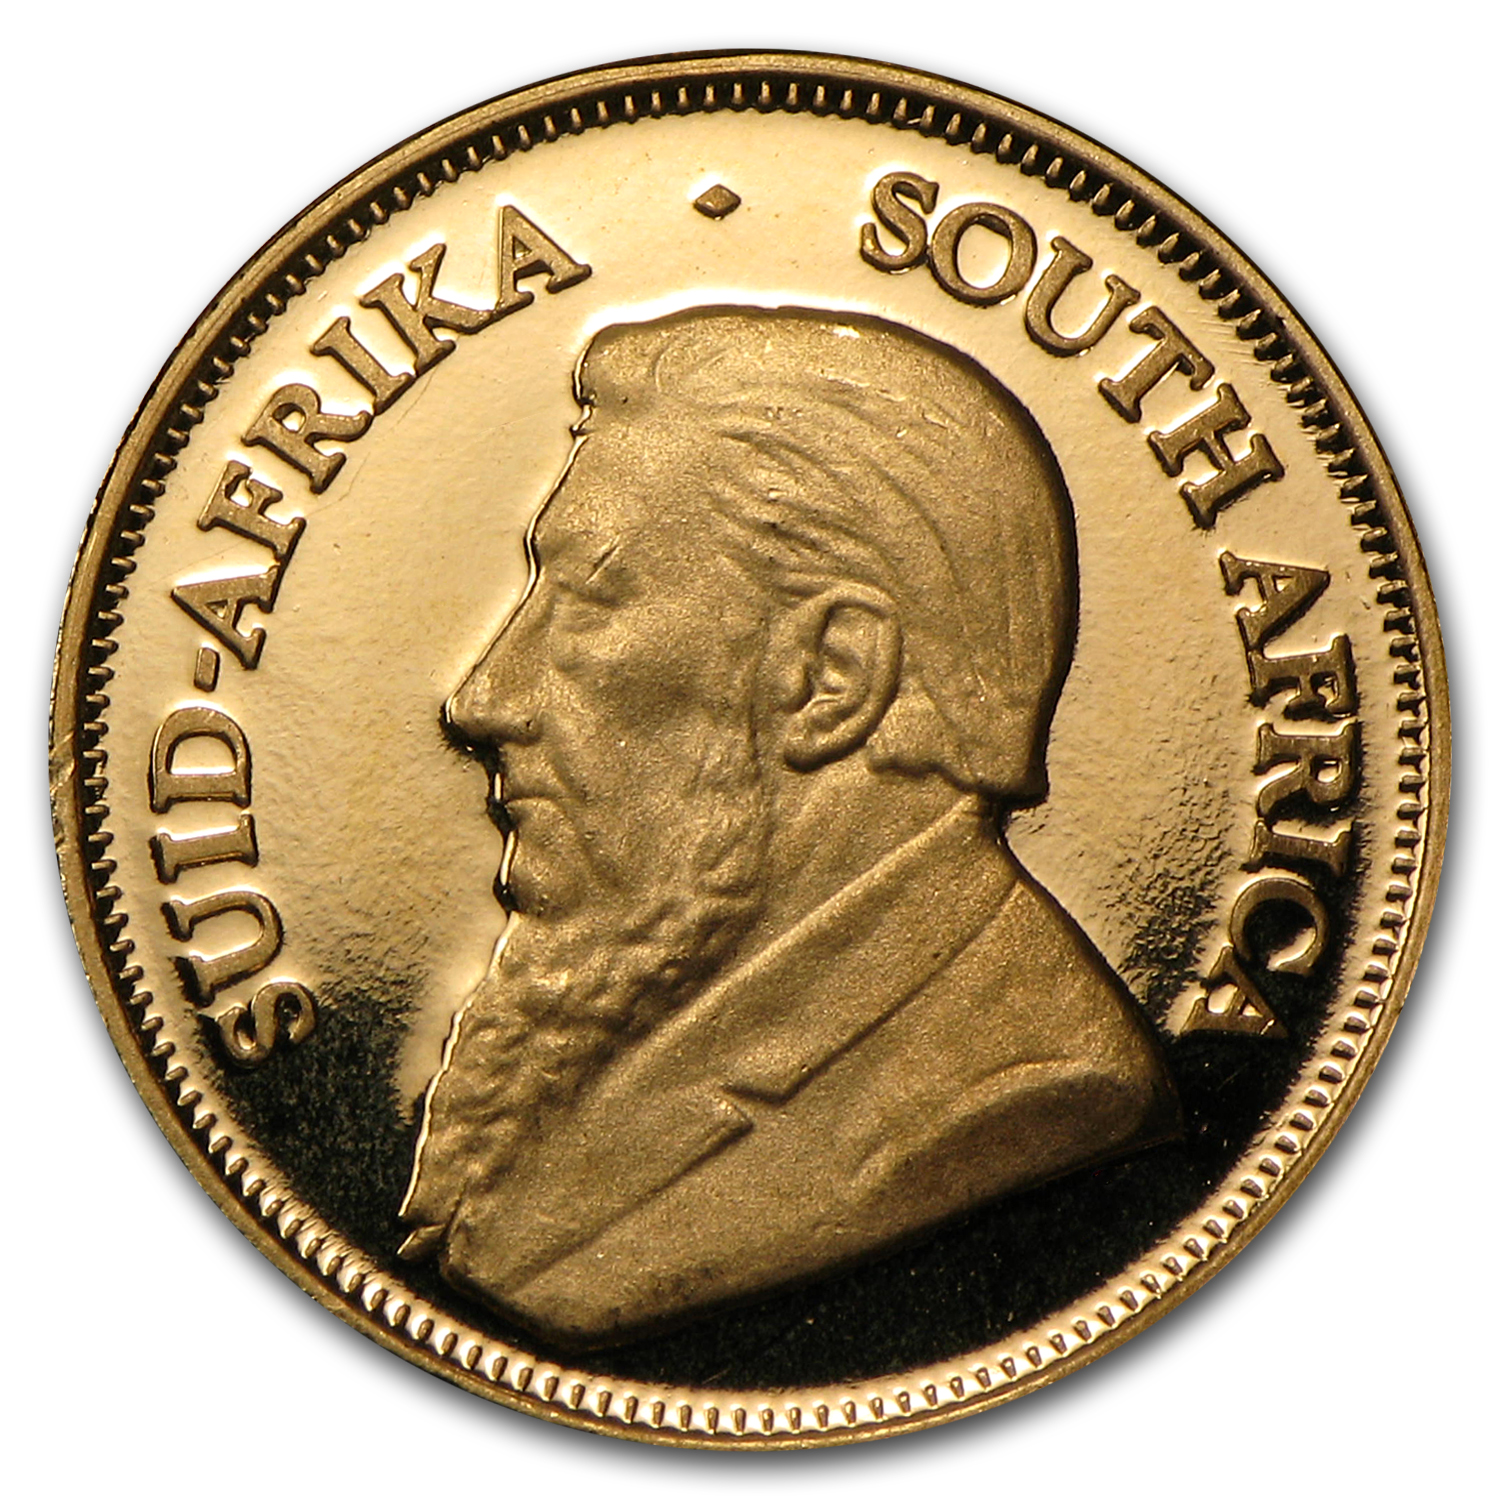 2004 1/10 oz Gold South African Krugerrand (Proof)